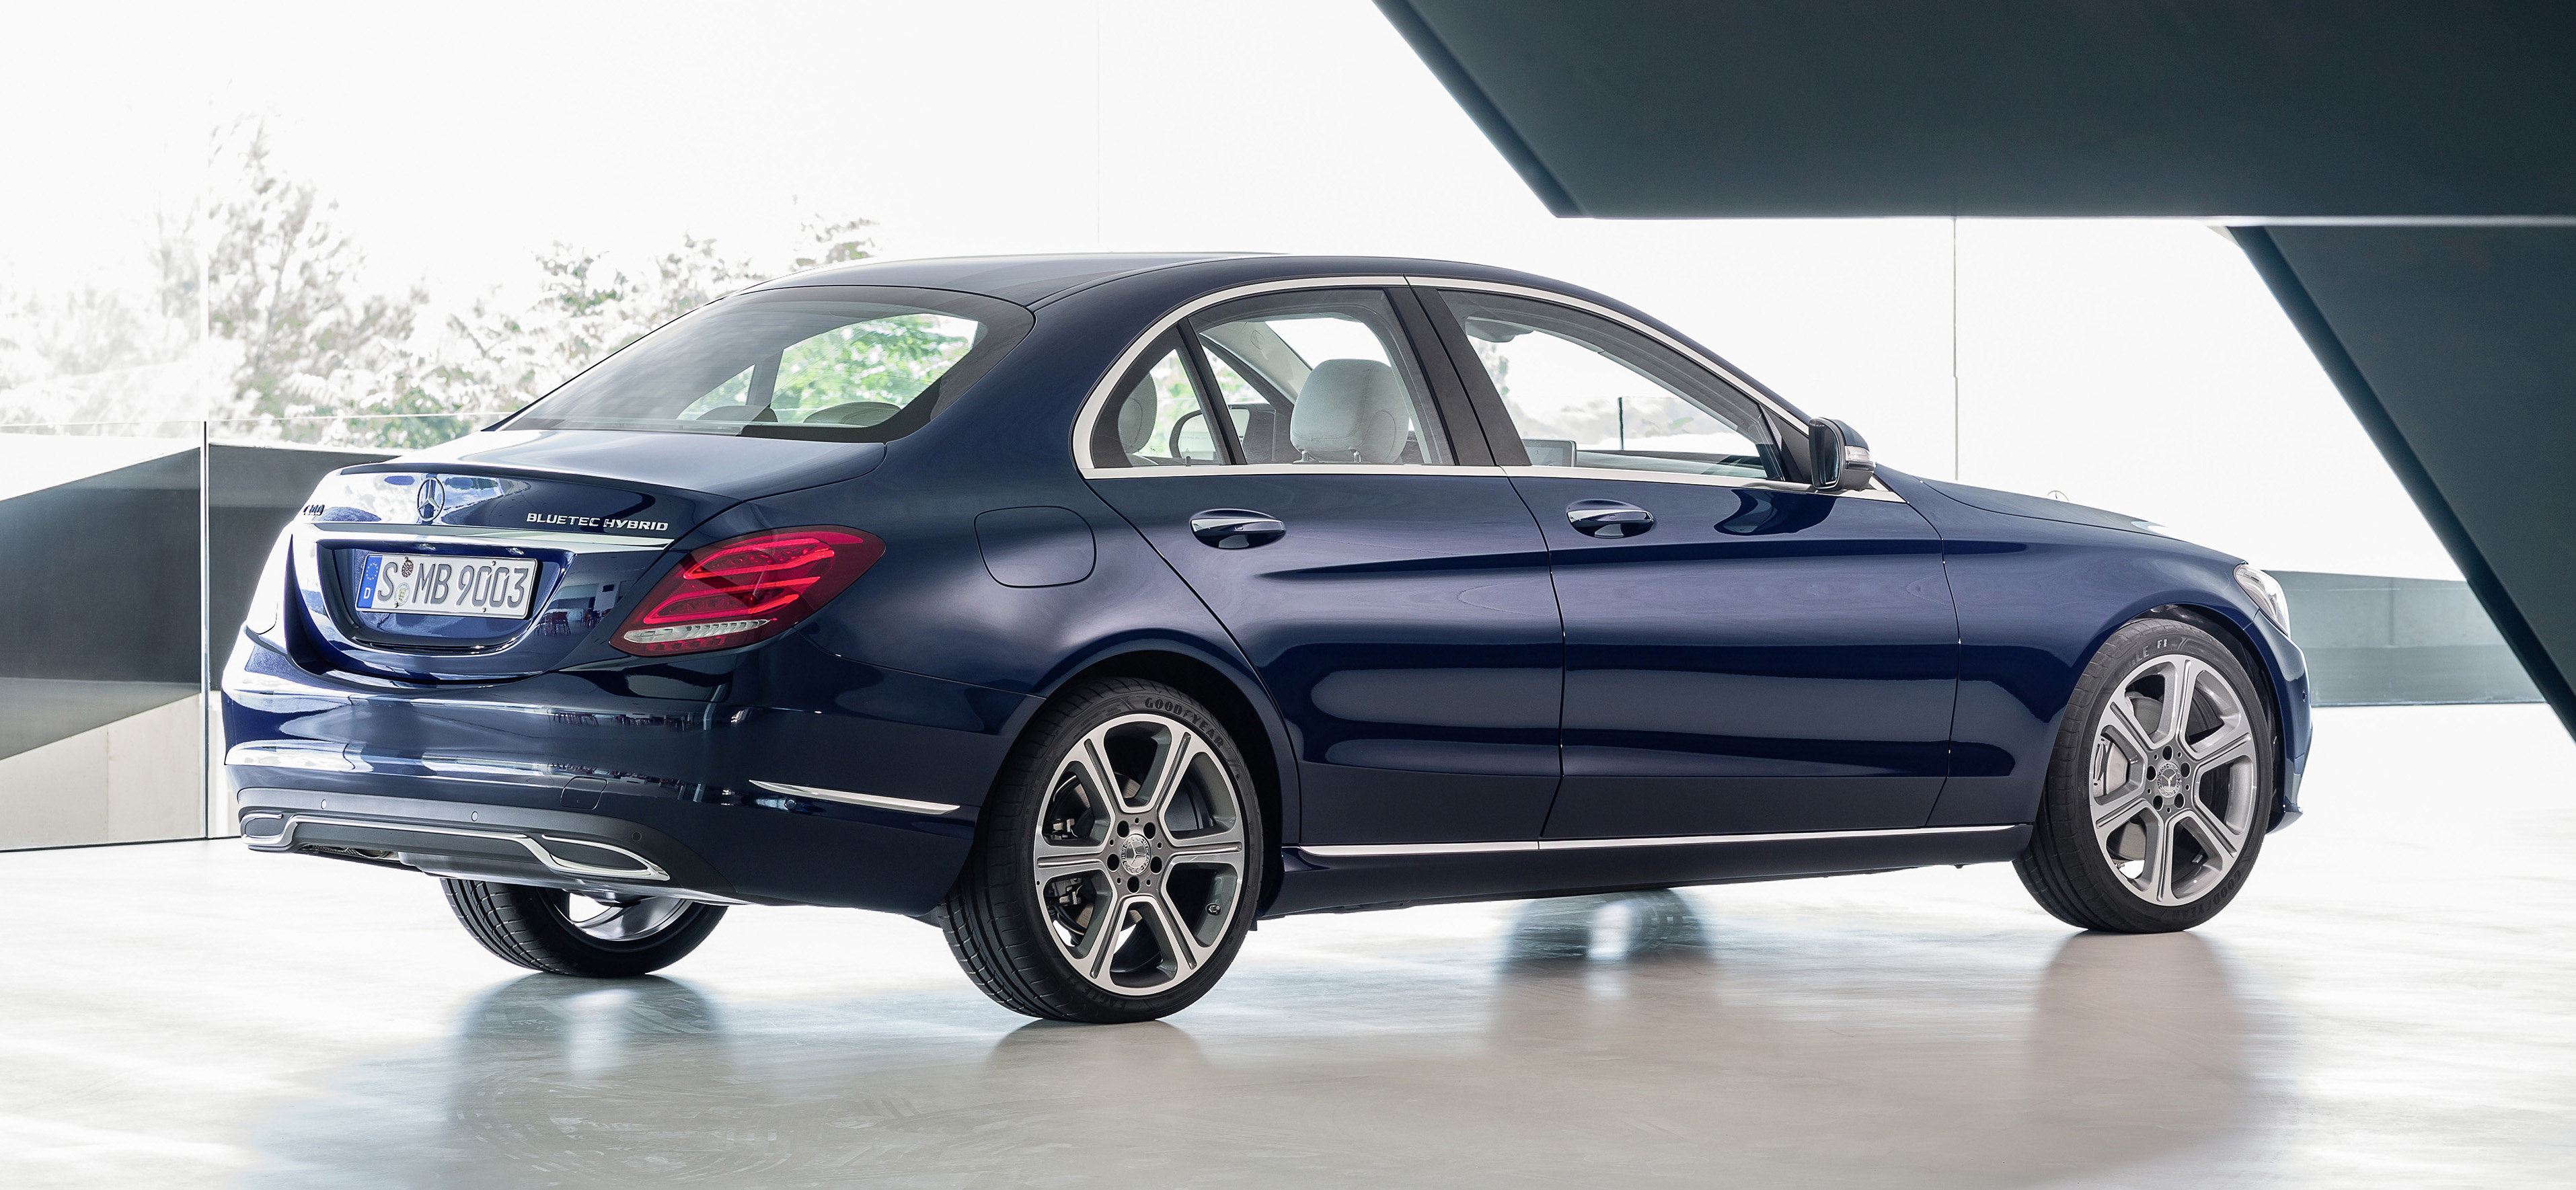 W205 Mercedes Benz C Class First Details Released Paul